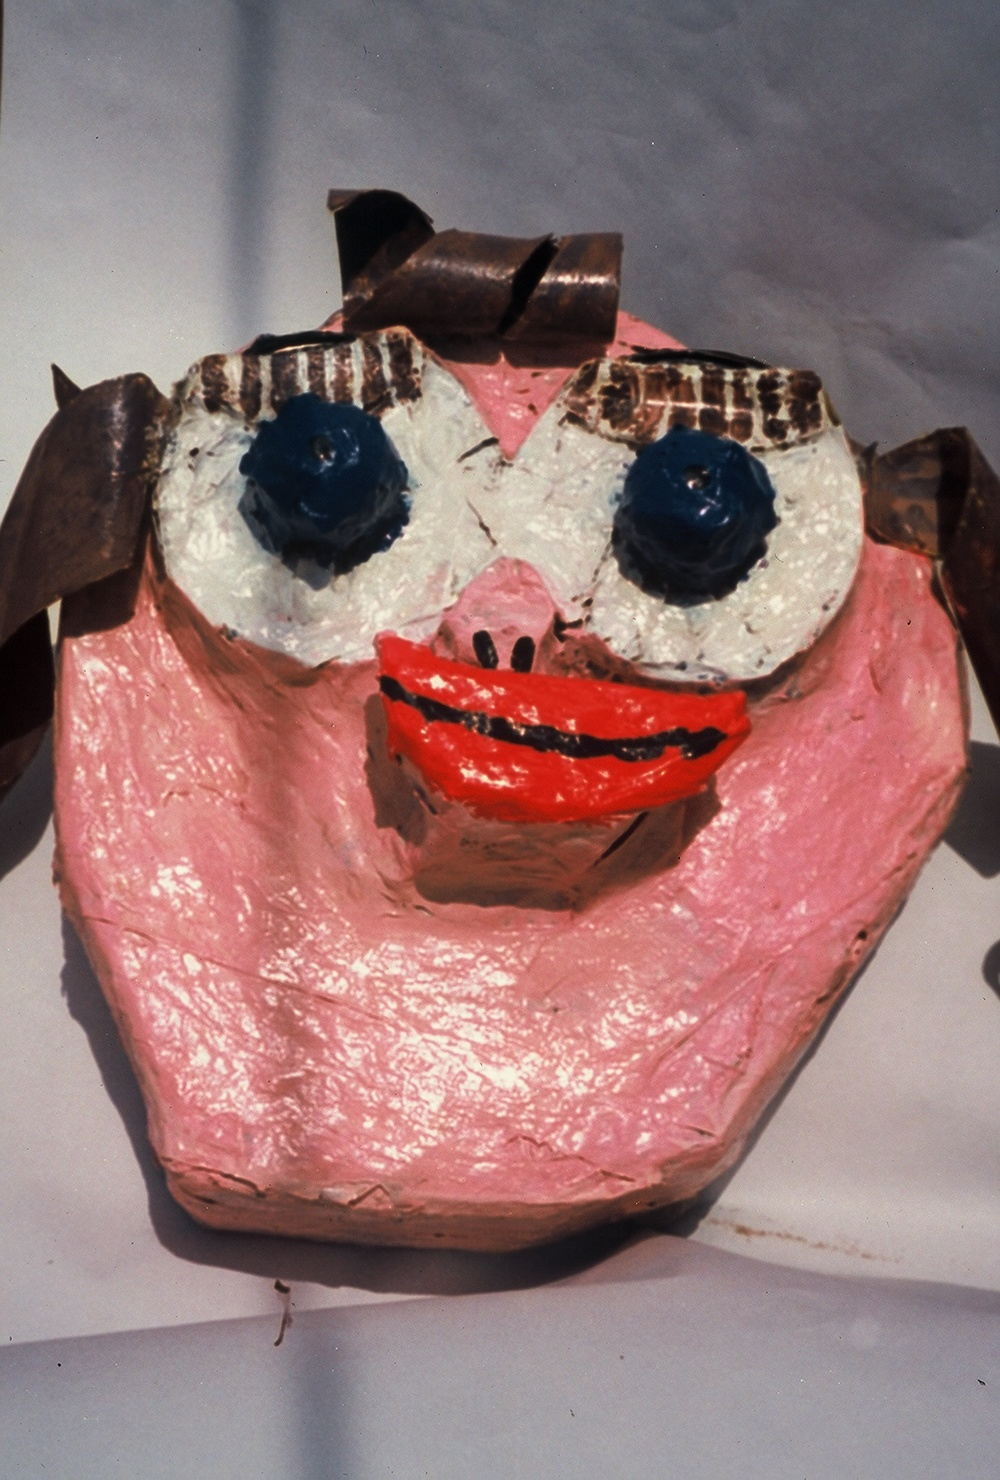 While living in New Mexico, I collaborated with Lind Piper, an actor, story teller and theater director, on several projects. This is a huge papier maché head, one of several made by students at an elementary school in Farmington, NM. The heads depicted the various stereotypes in the play that the children wrote and acted before an audience of friends and family. The message of the play was: learn to see people as individuals and not as stereotypes based on prejudice.